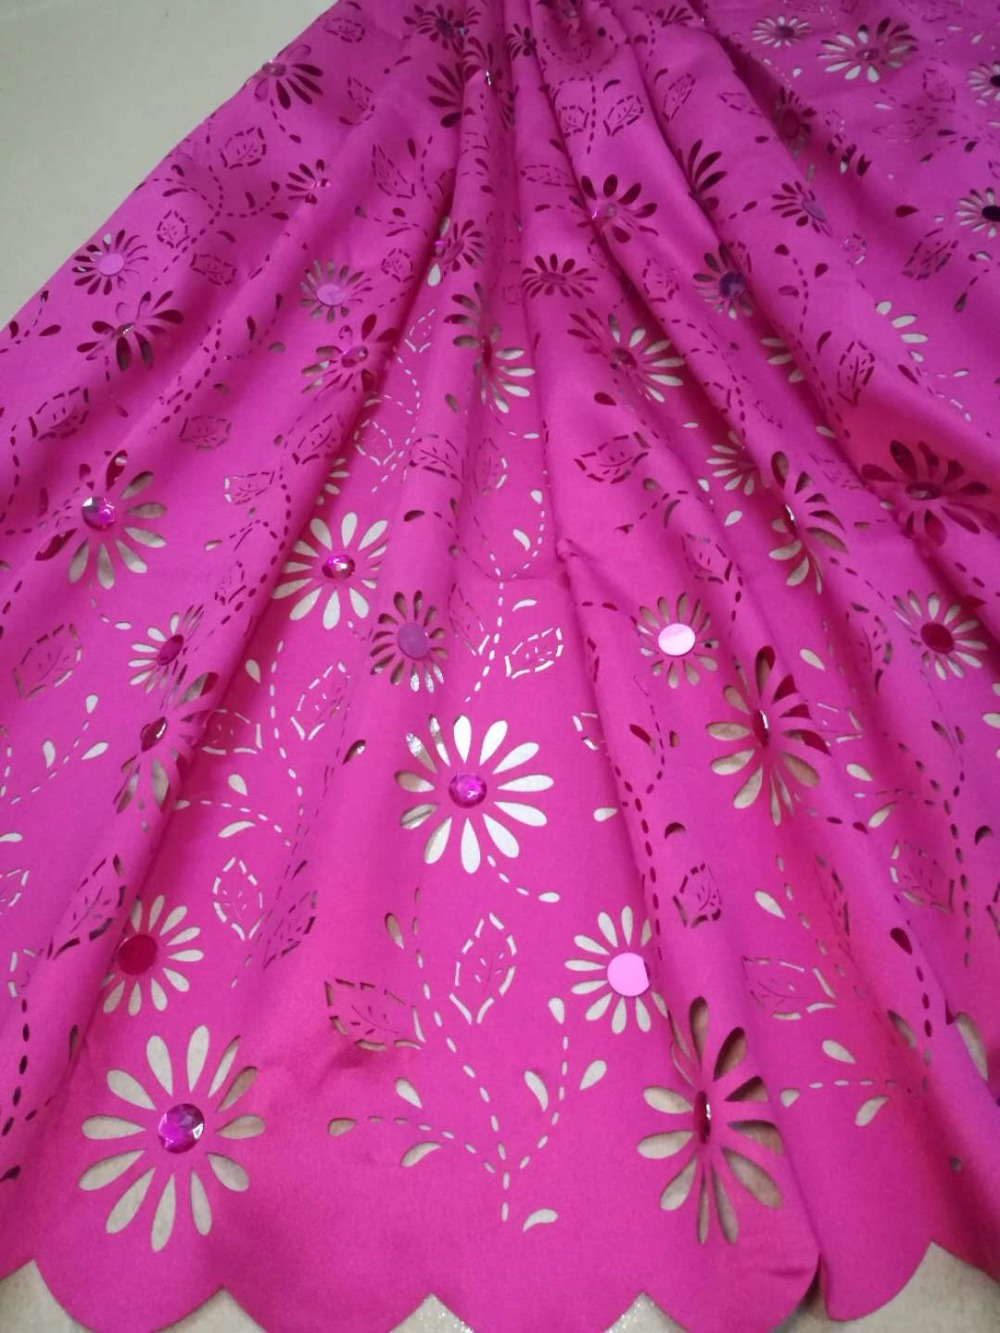 2018 Laser Cut Lace Fabric Hot Selling Nigerian Lace With Beads French Lace Materials For Wedding And Party 2018 Laser Cut Lace Fabric Hot Selling Nigerian Lace With Beads French Lace Materials For Wedding And Party